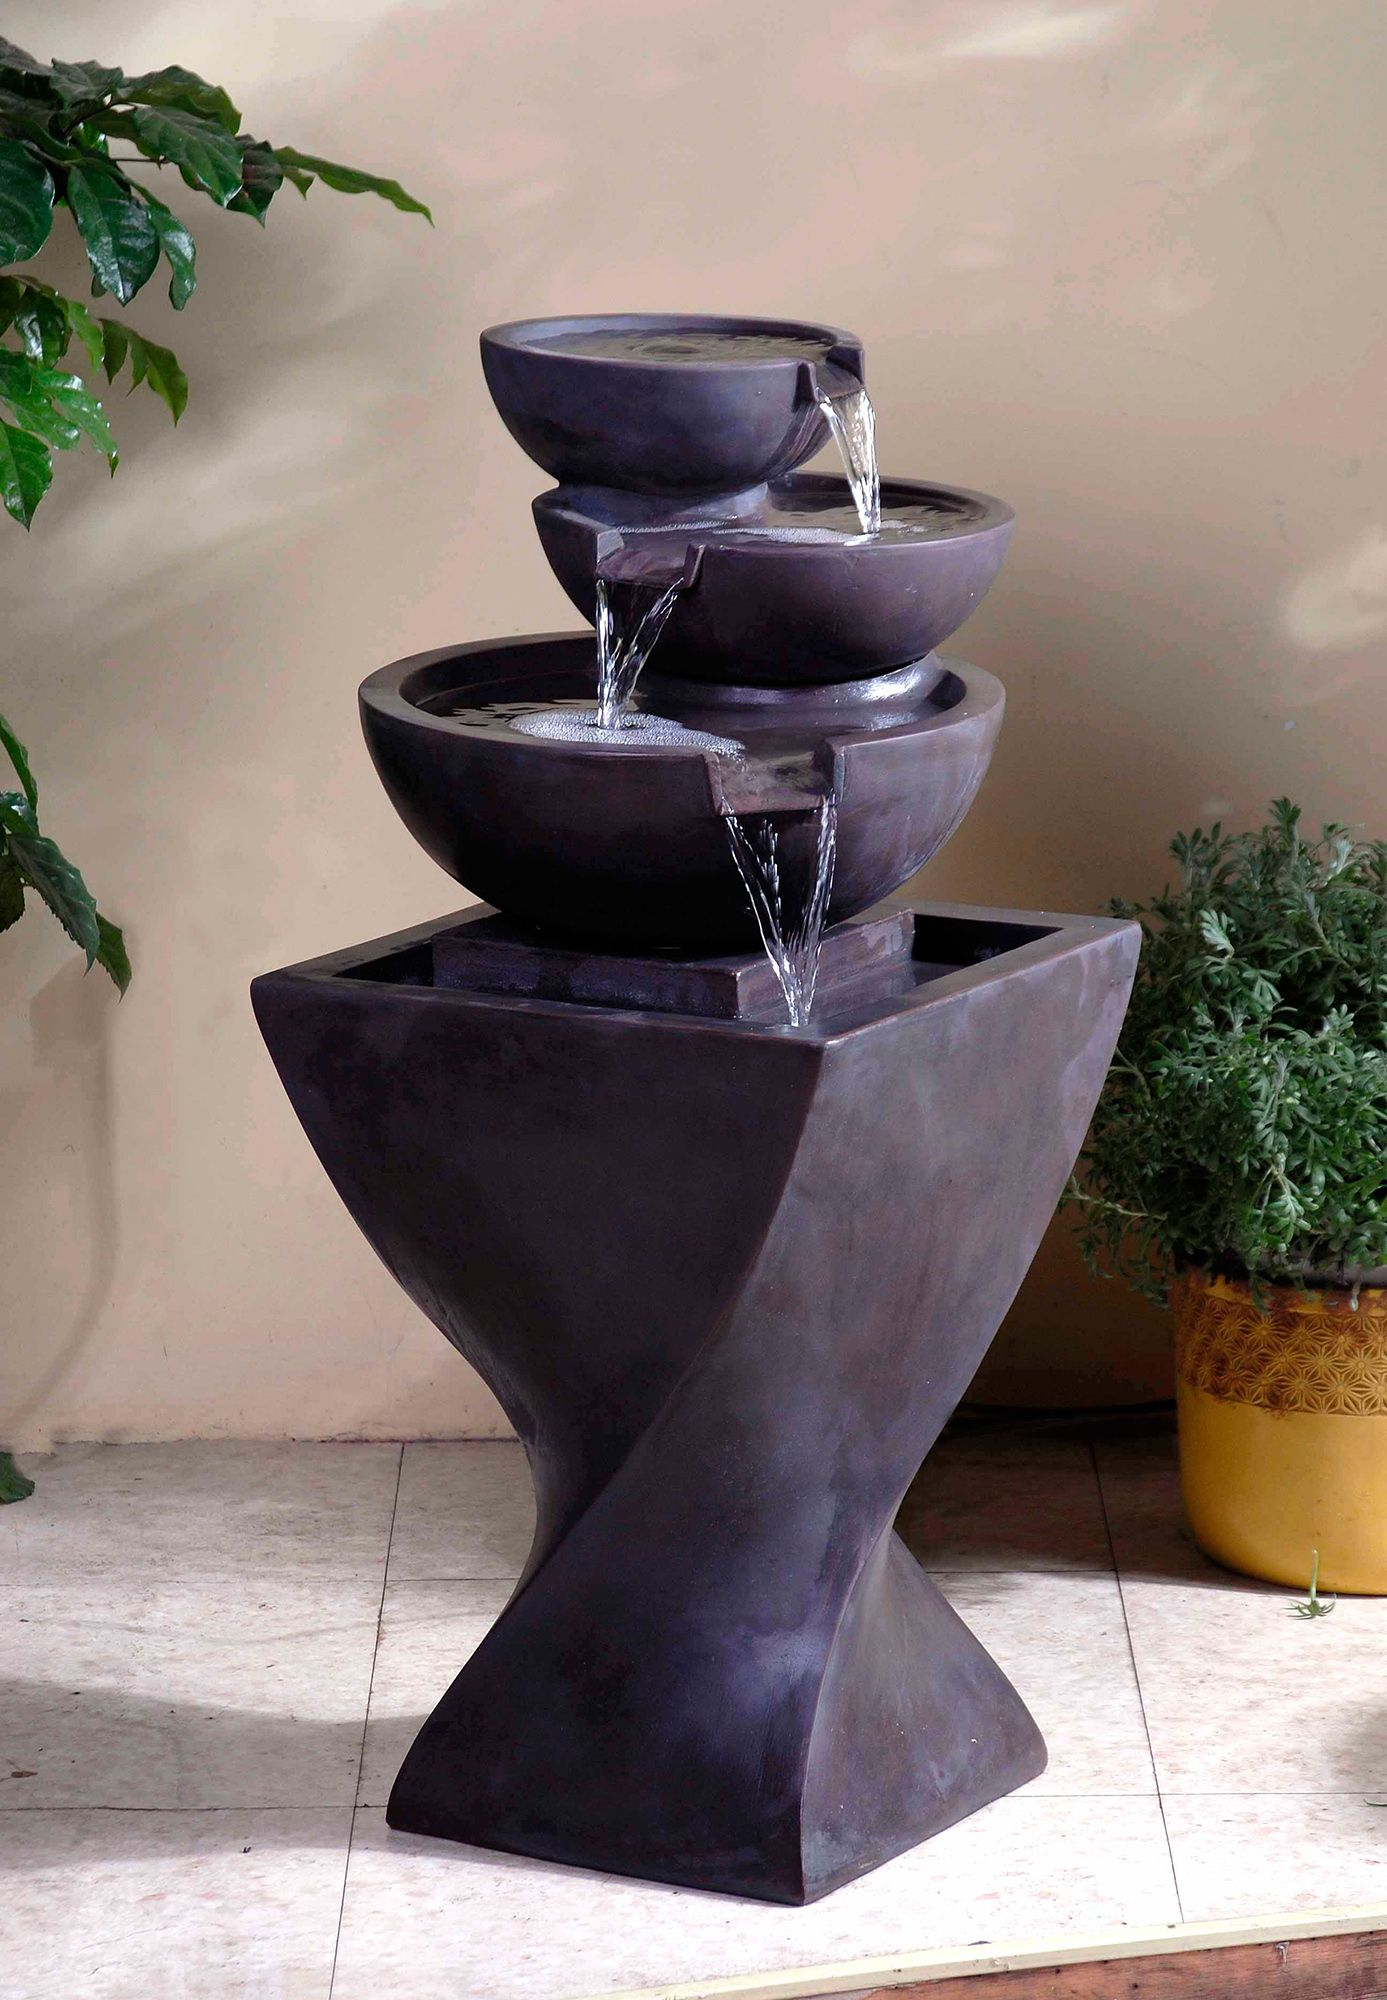 Builddirect Kontiki Water Features Faux Stone Fountains Water Fountains Outdoor Indoor Water Fountains Garden Water Fountains